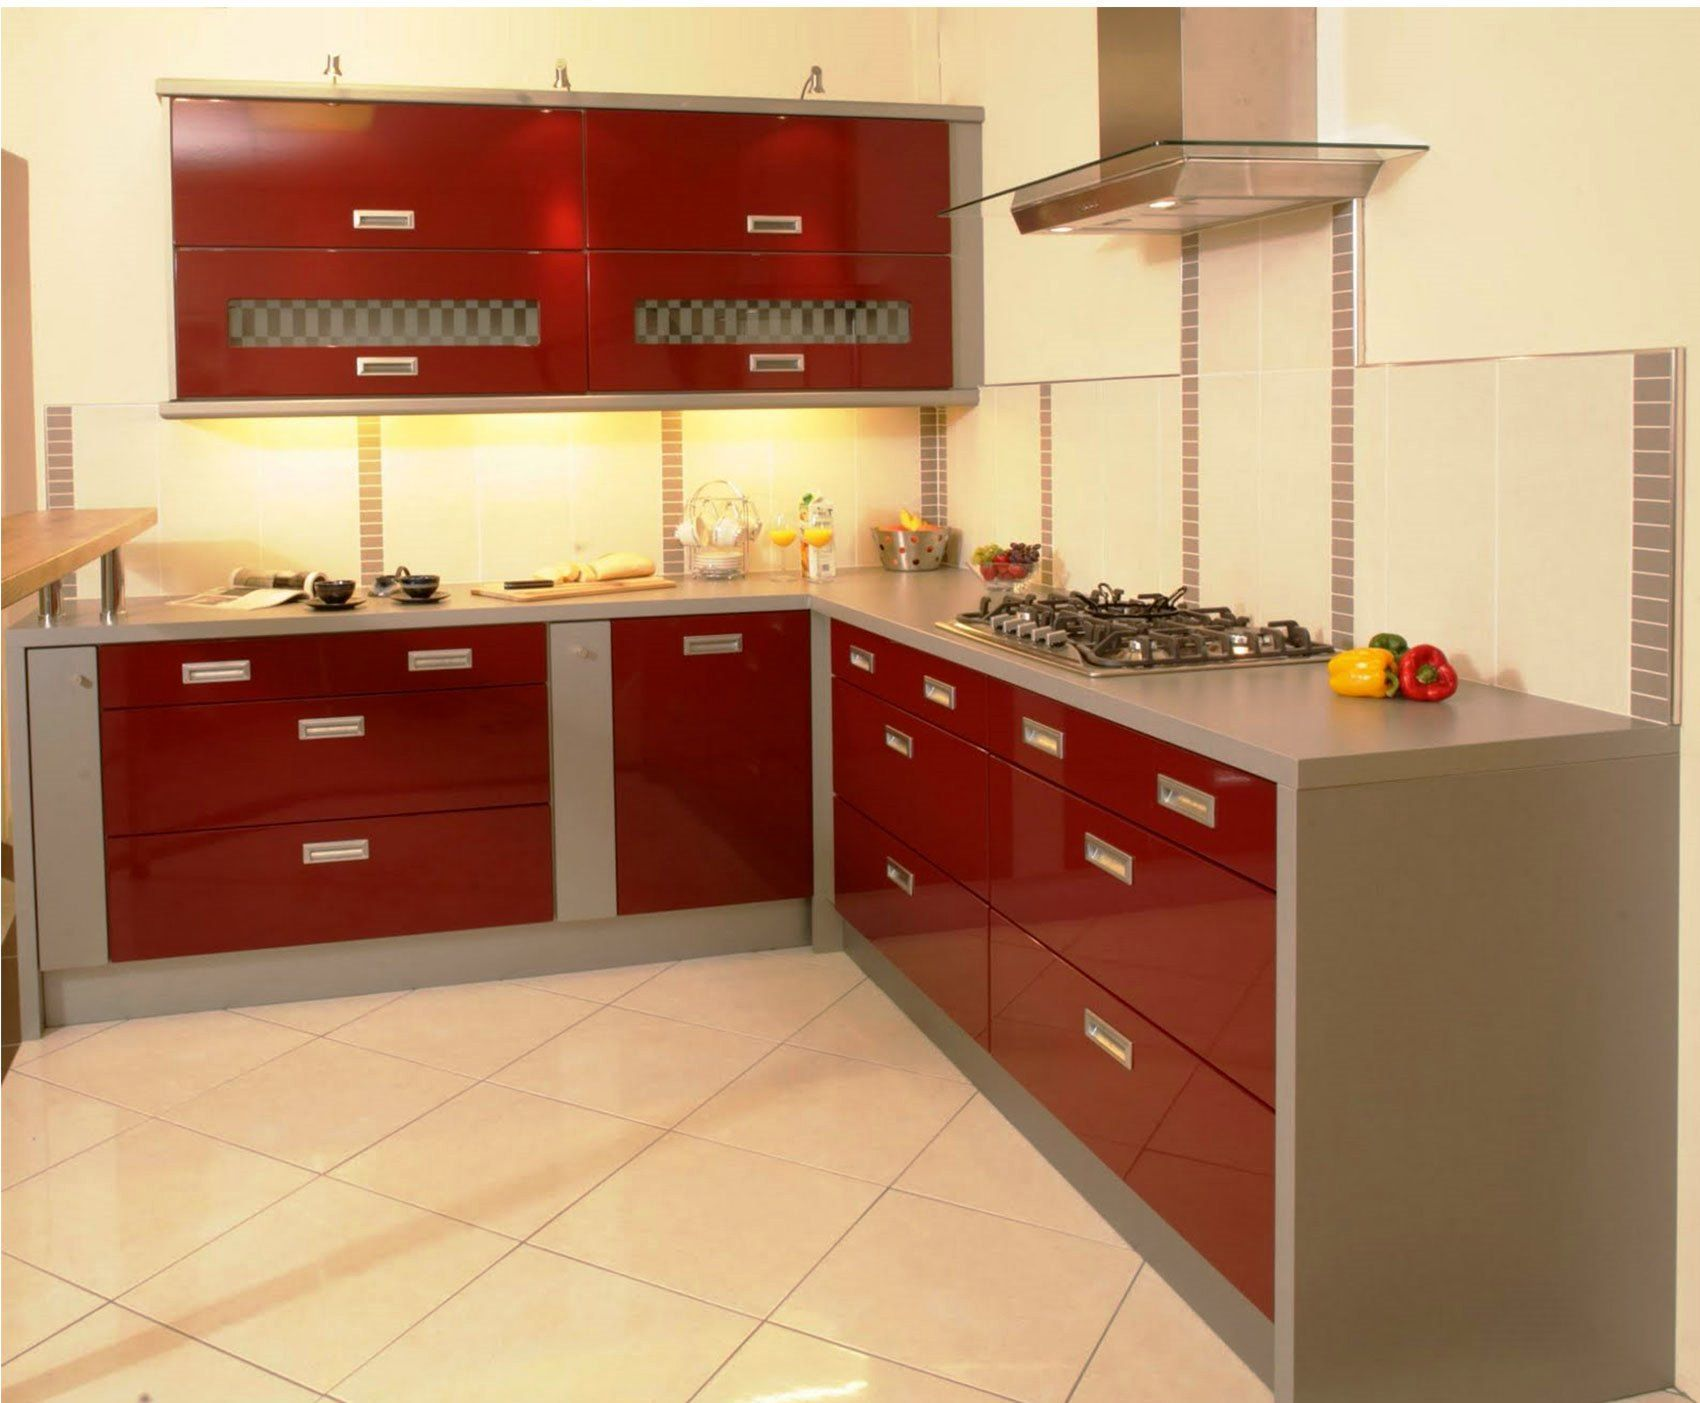 Refinishing oak kitchen cabinets interior designs refinishing oak